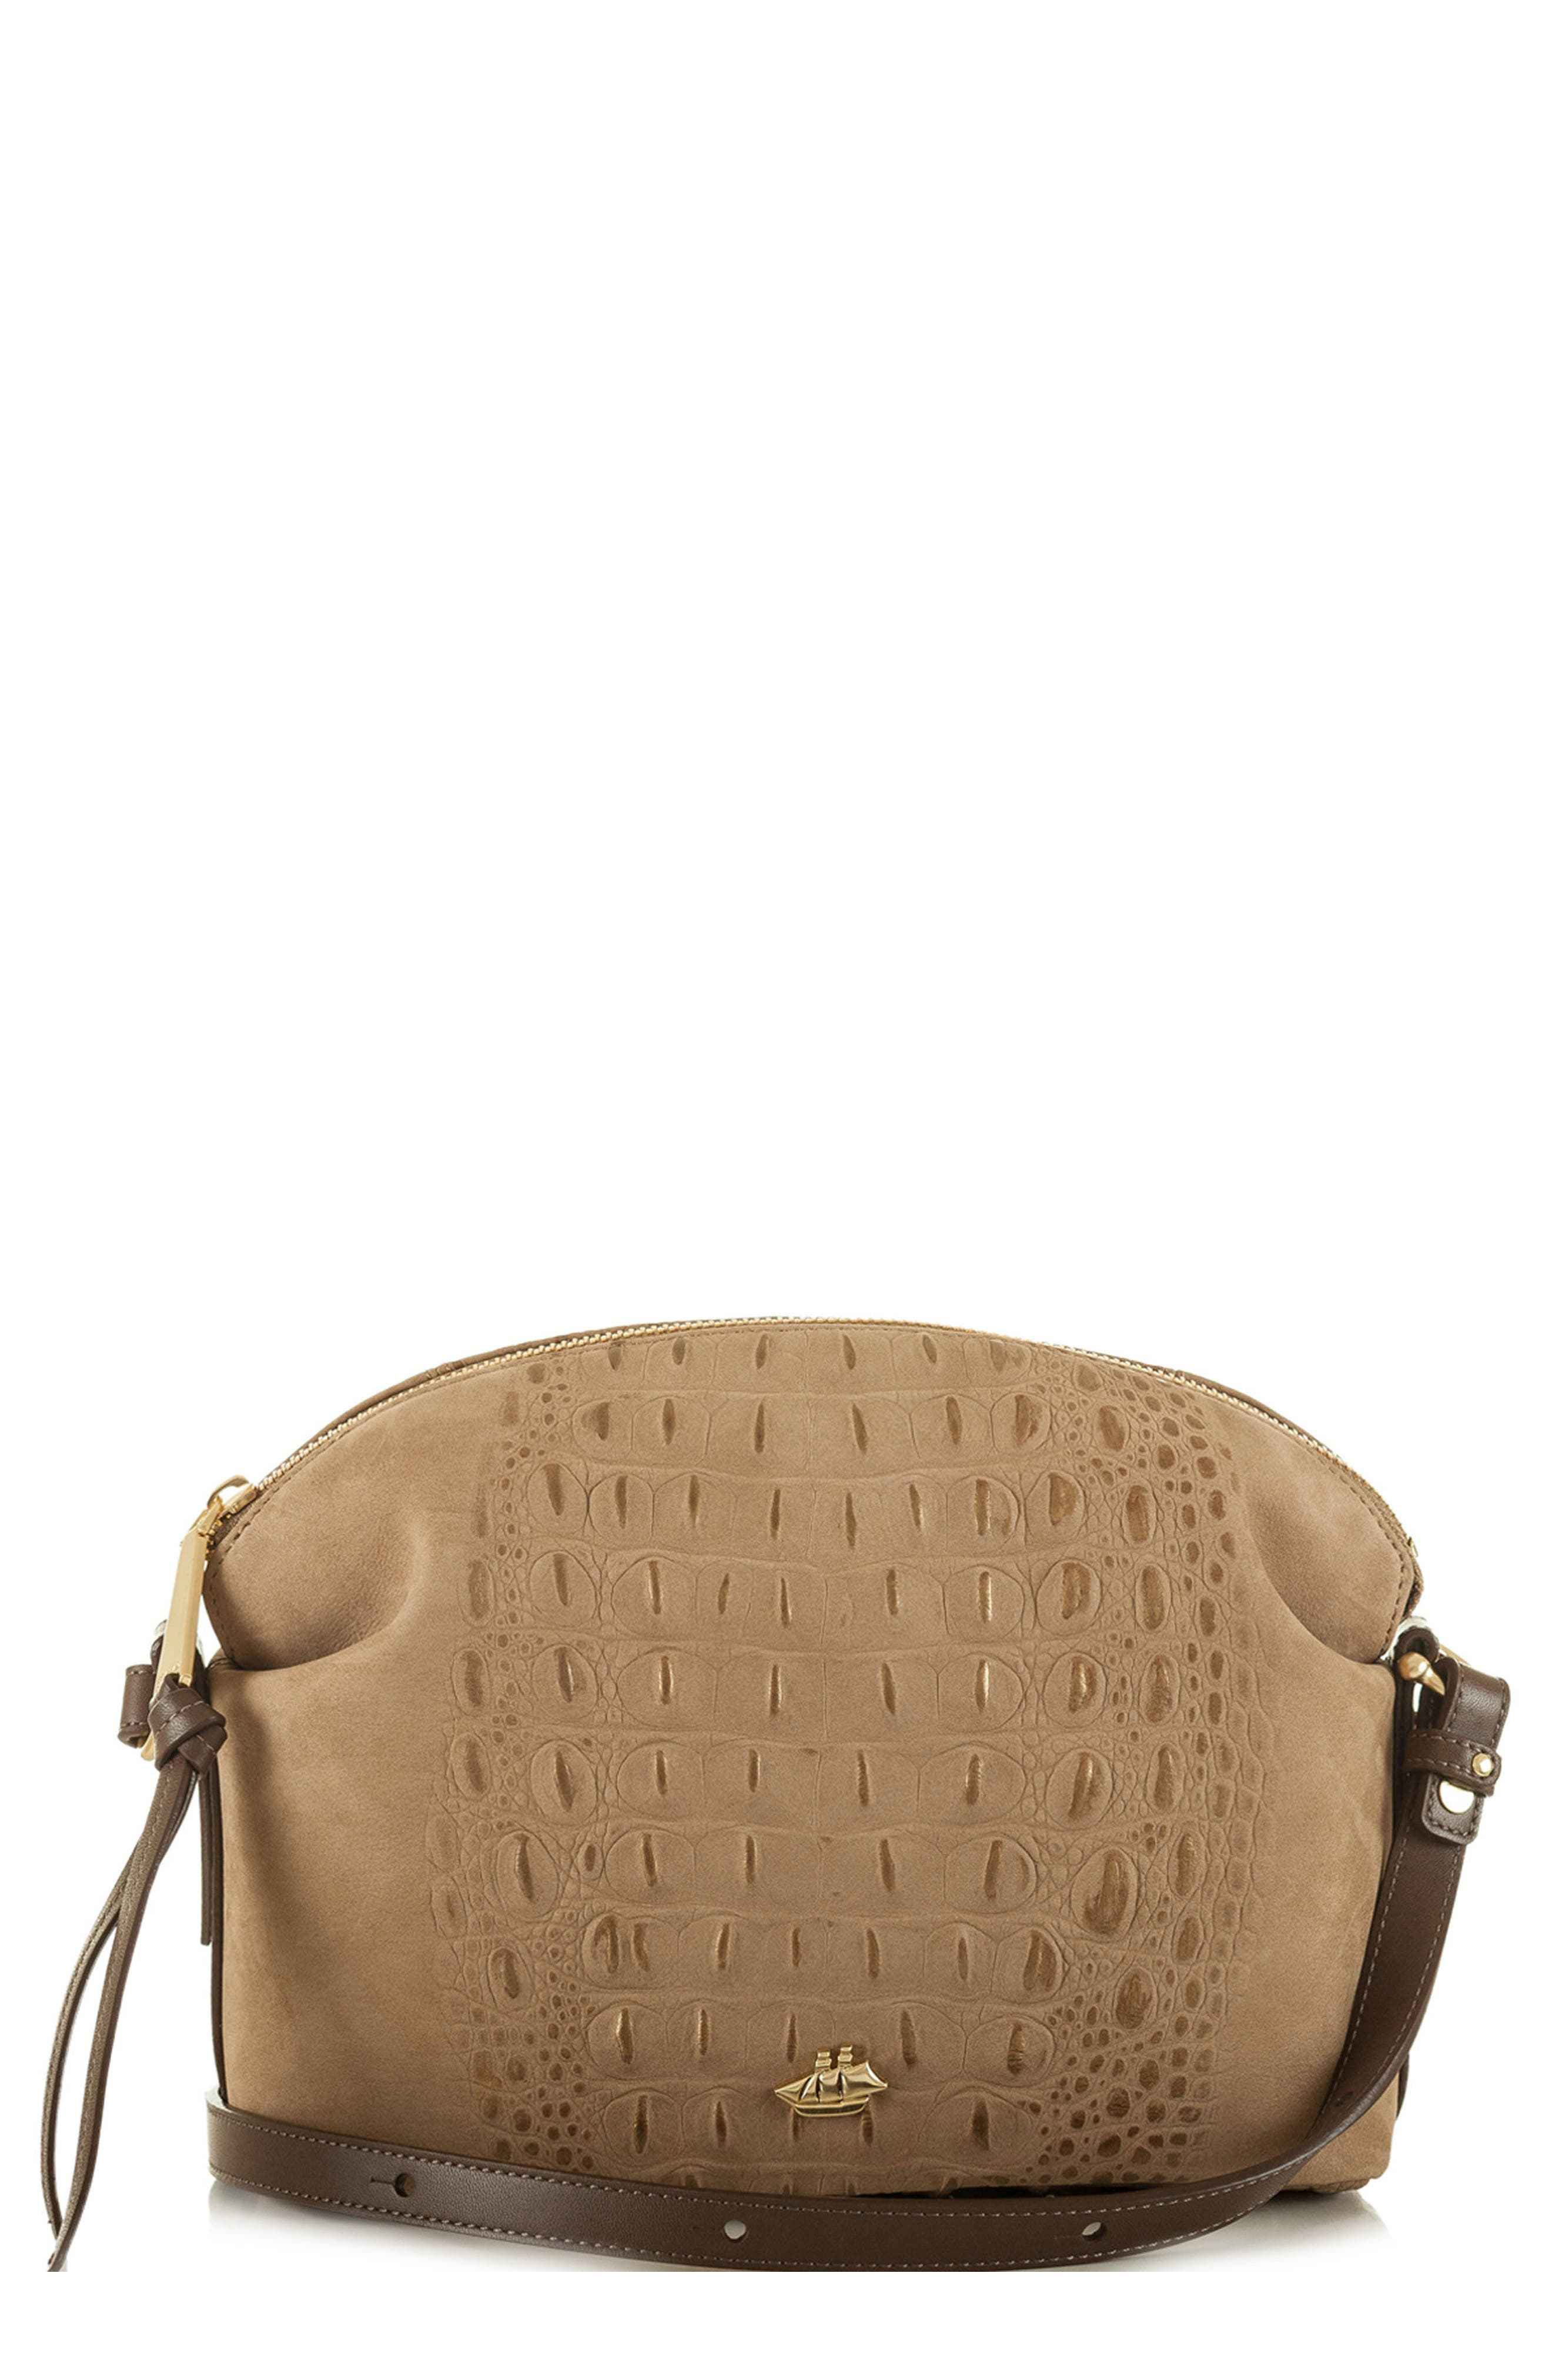 Southcast Haley Metallic Croc Embossed Leather Crossbody Bag,                             Main thumbnail 1, color,                             Gold